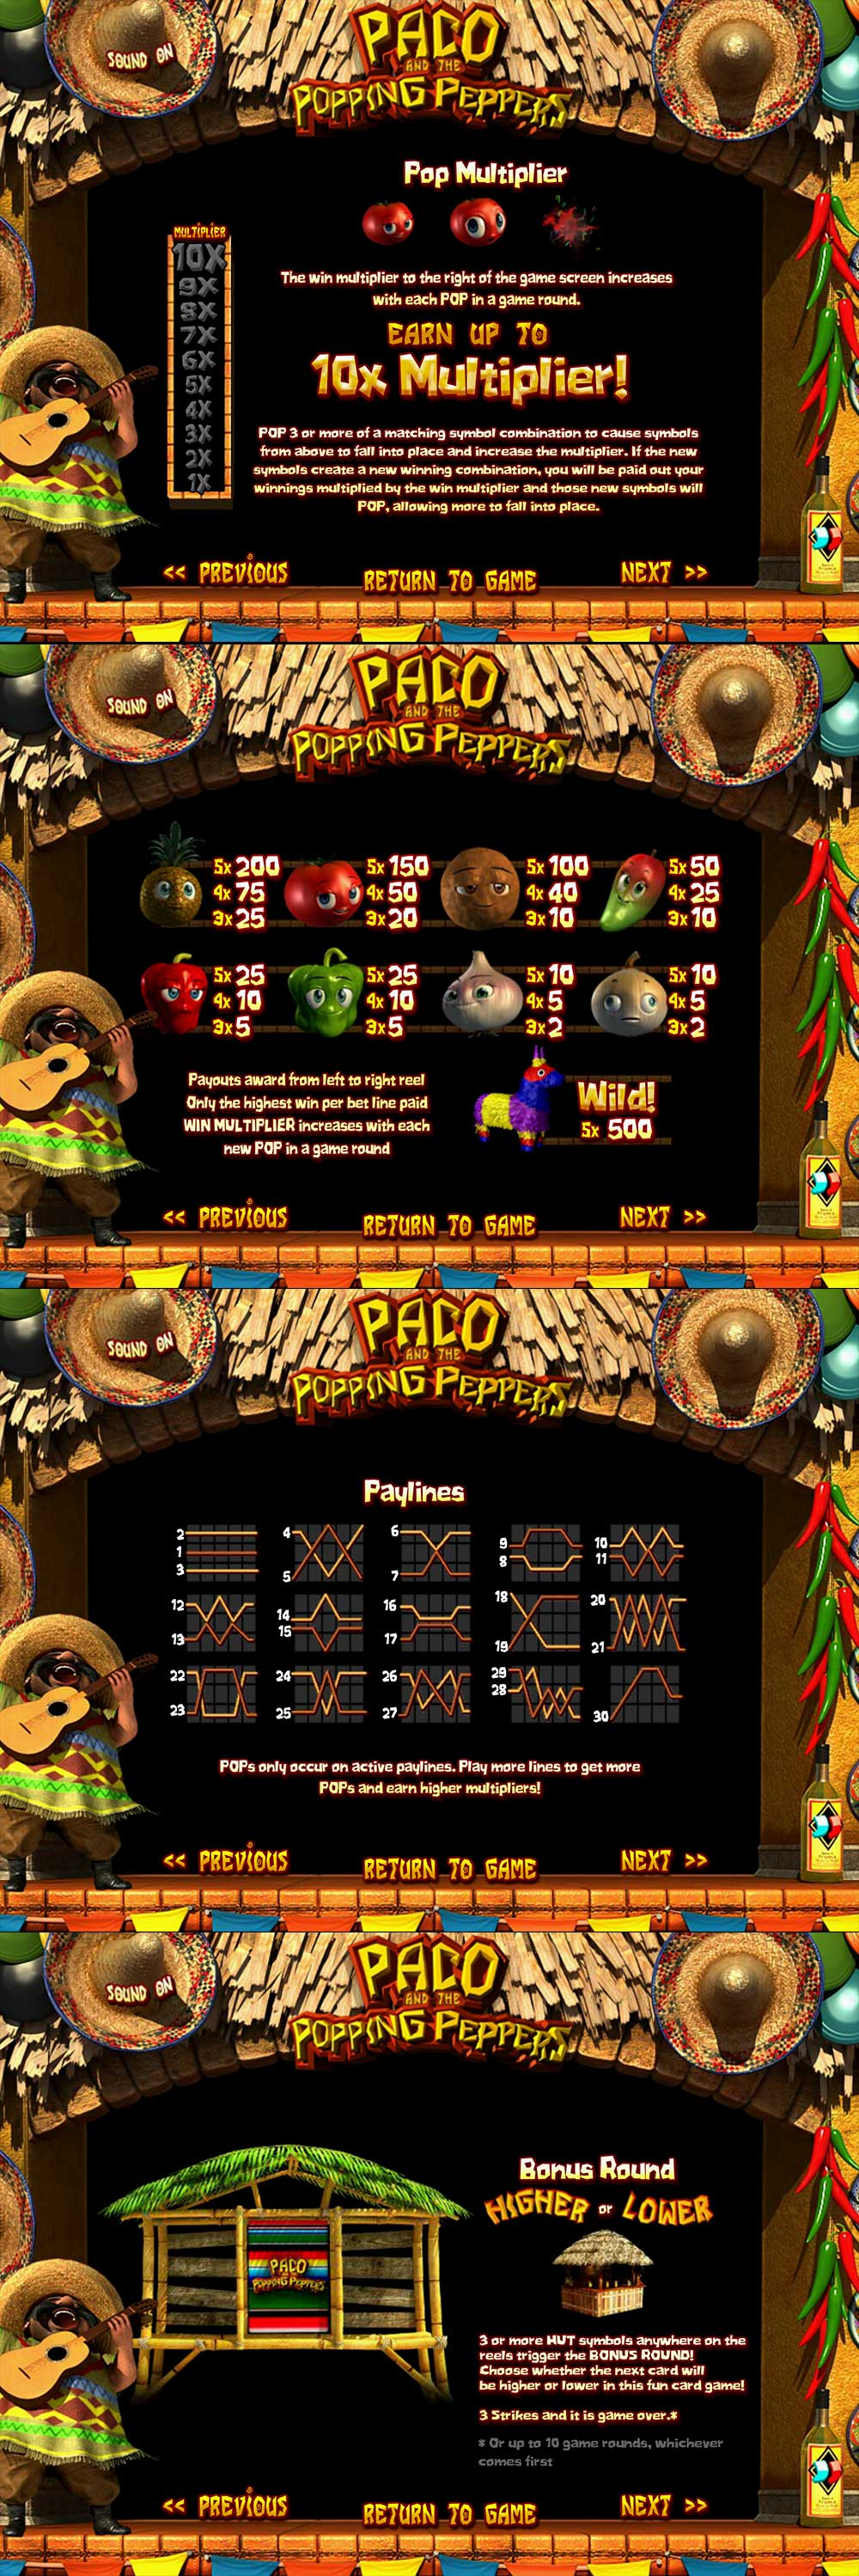 Paco and the Popping Peppers Pay Table Screenshot, Big Dollar Casino